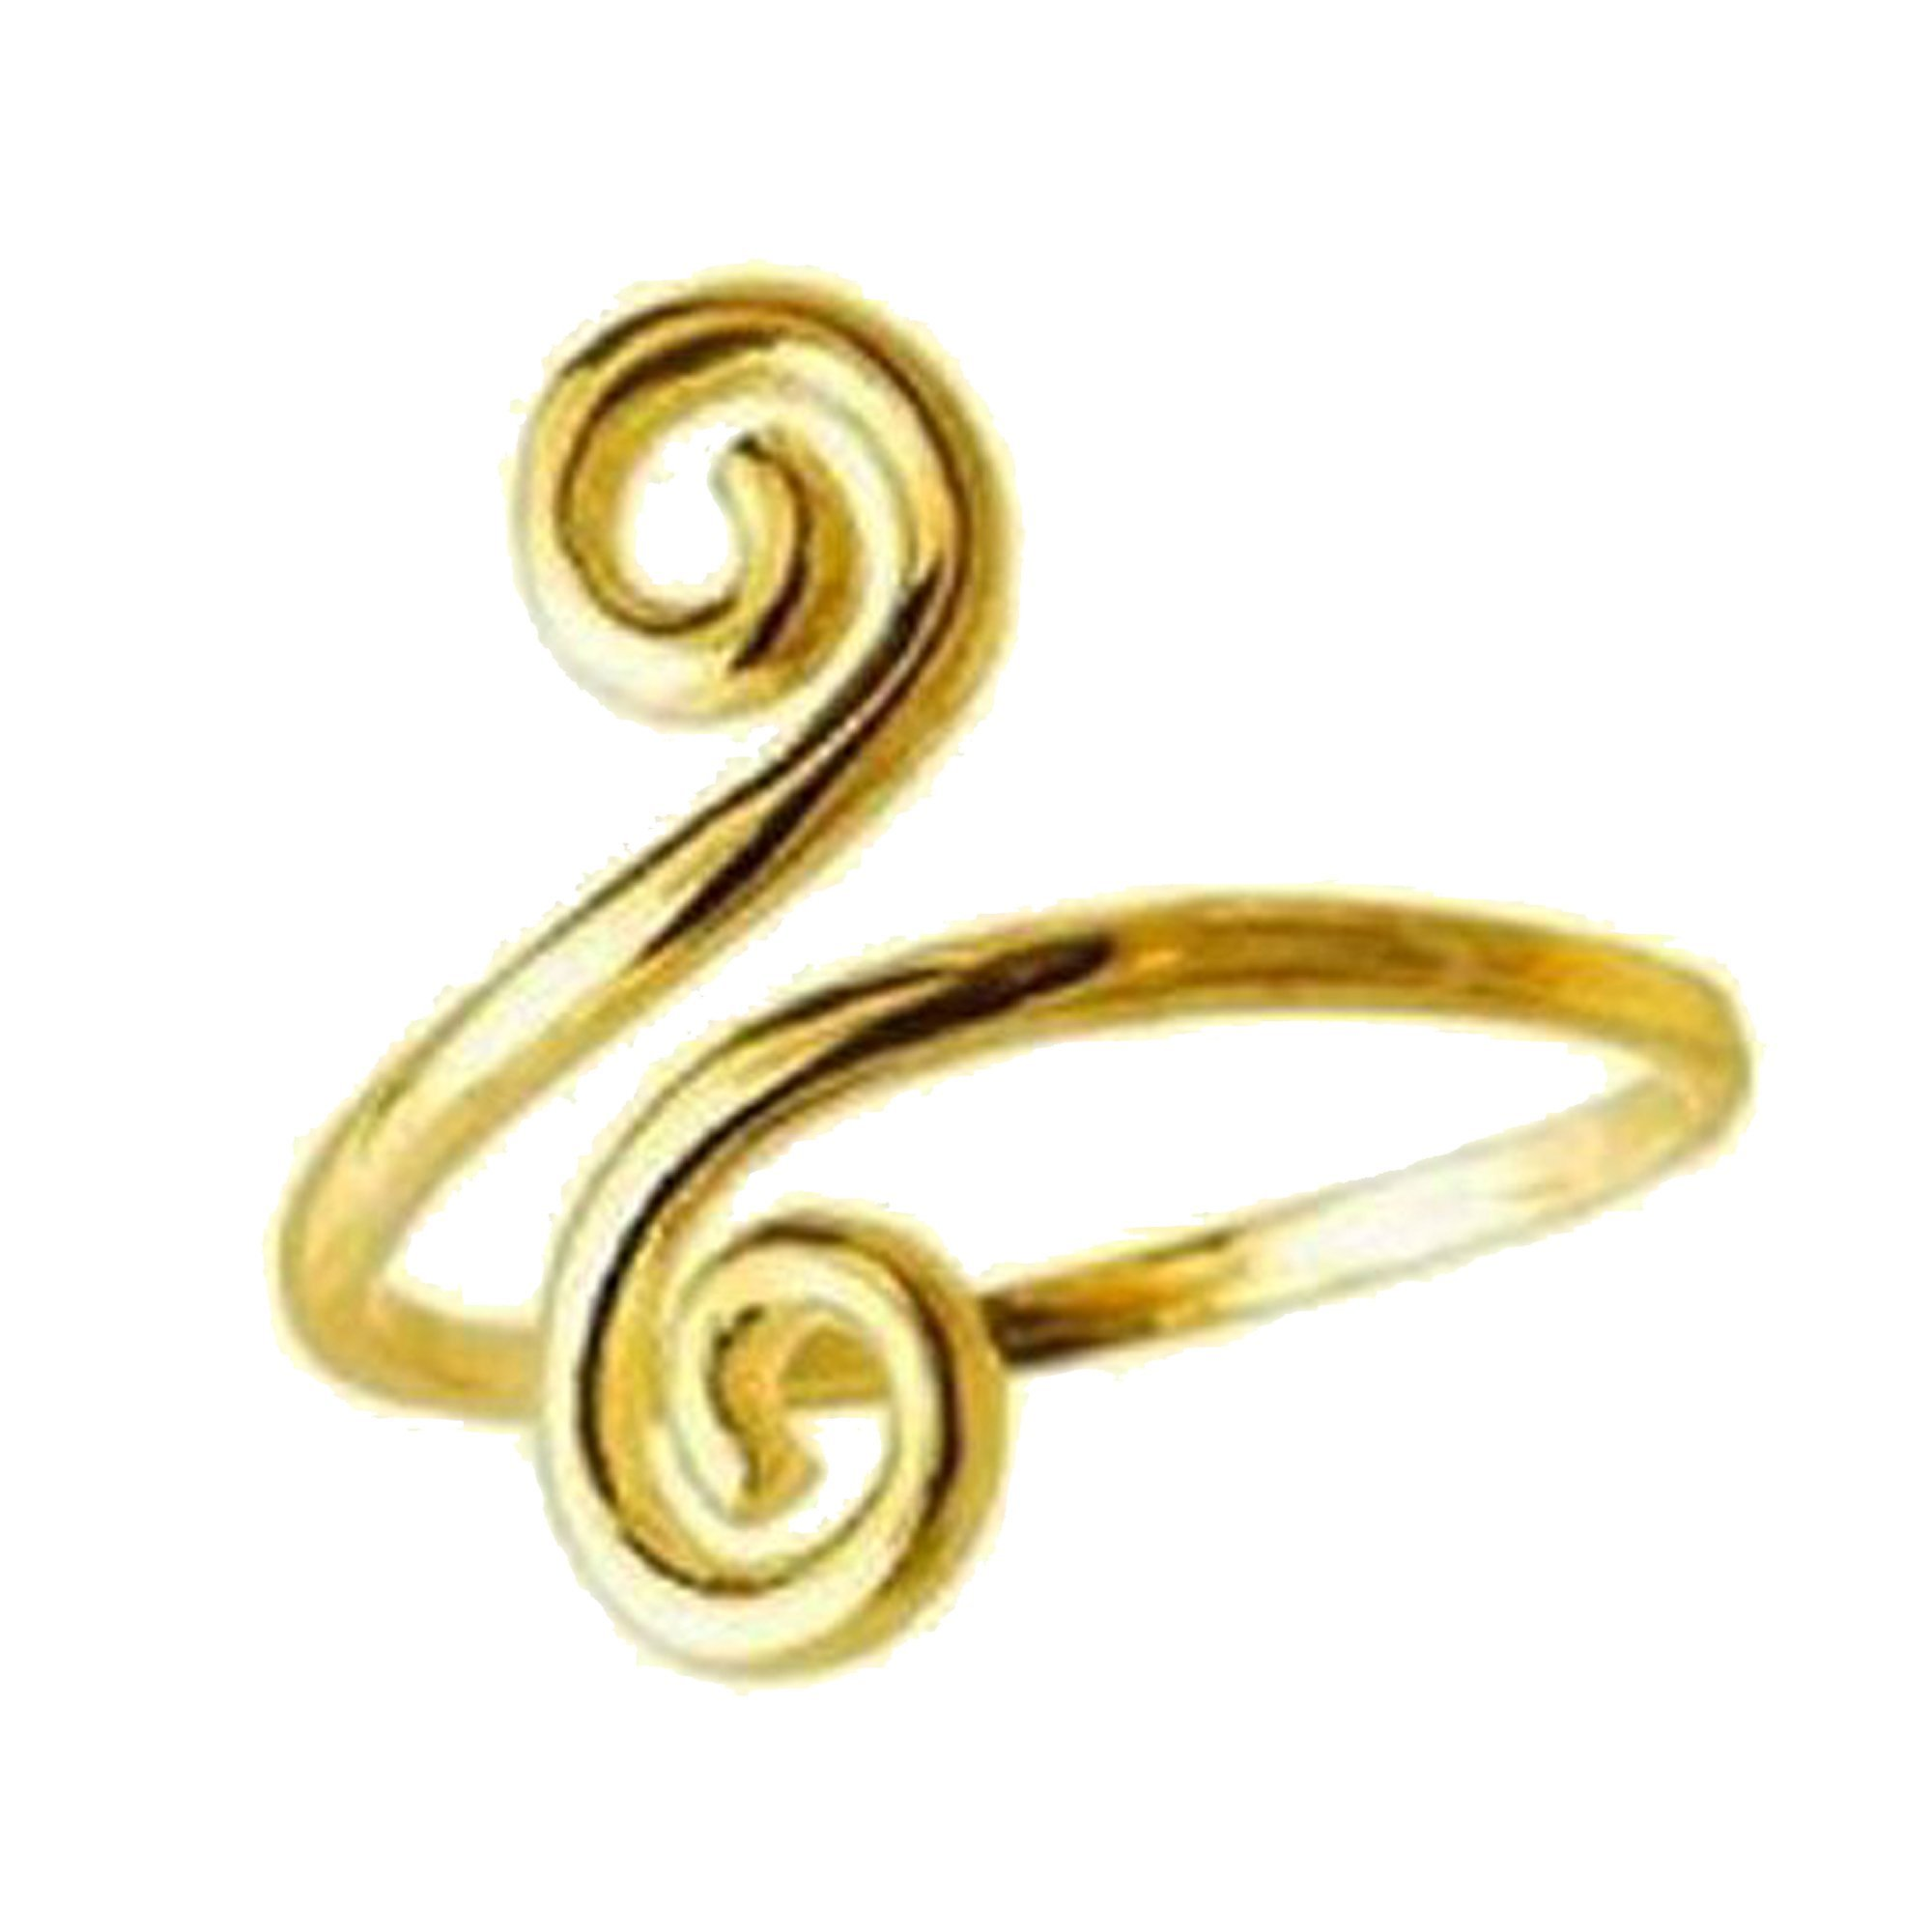 14k Solid Yellow Gold Swirl Adjustable Ring or Toe Ring